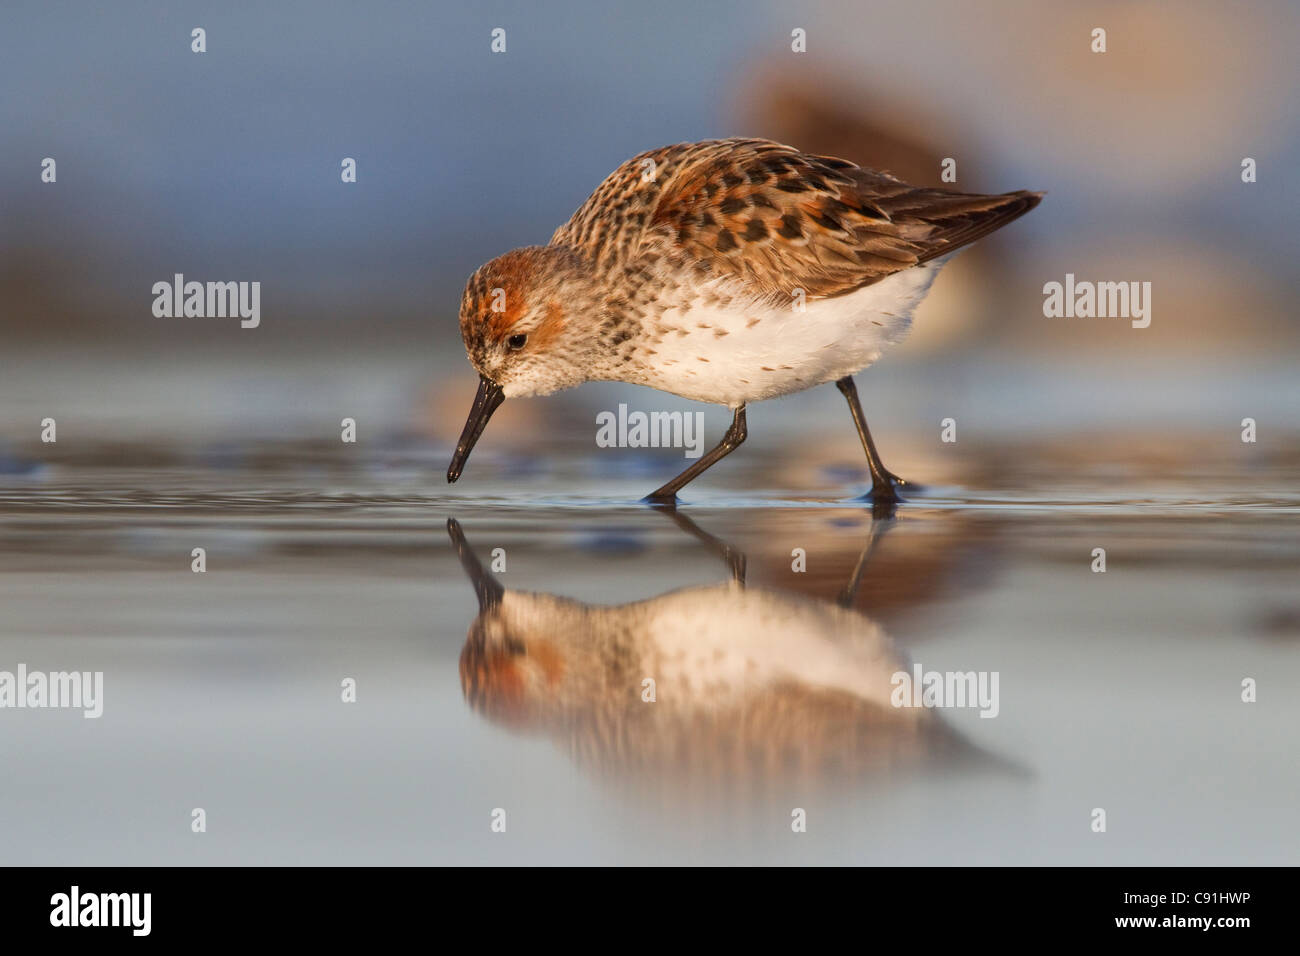 Western Sandpiper foraging on mudflats with reflection, at Hartney Bay, Copper River Delta, near Cordova, Alaska, - Stock Image